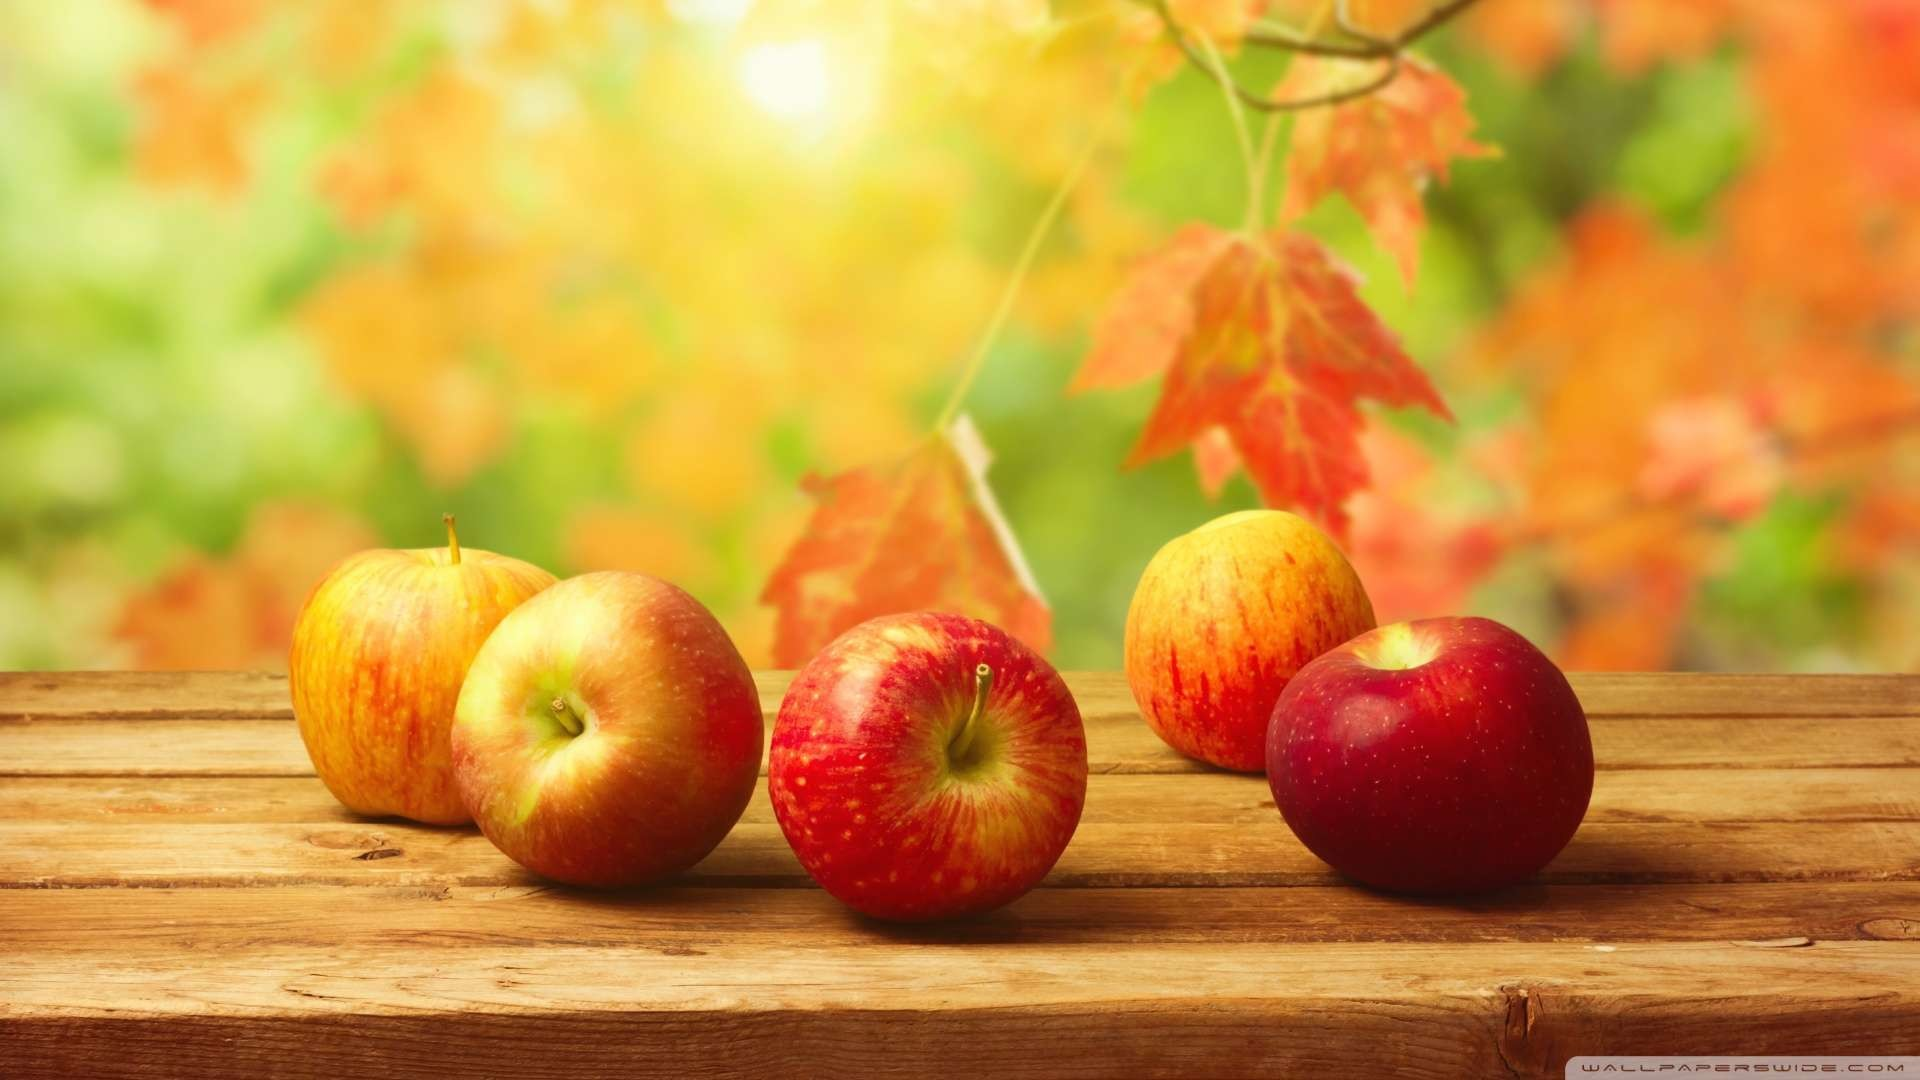 1920x1080 Wallpaper: Fall Apples Wallpaper 1080p HD. Upload at January 12, 2014 .